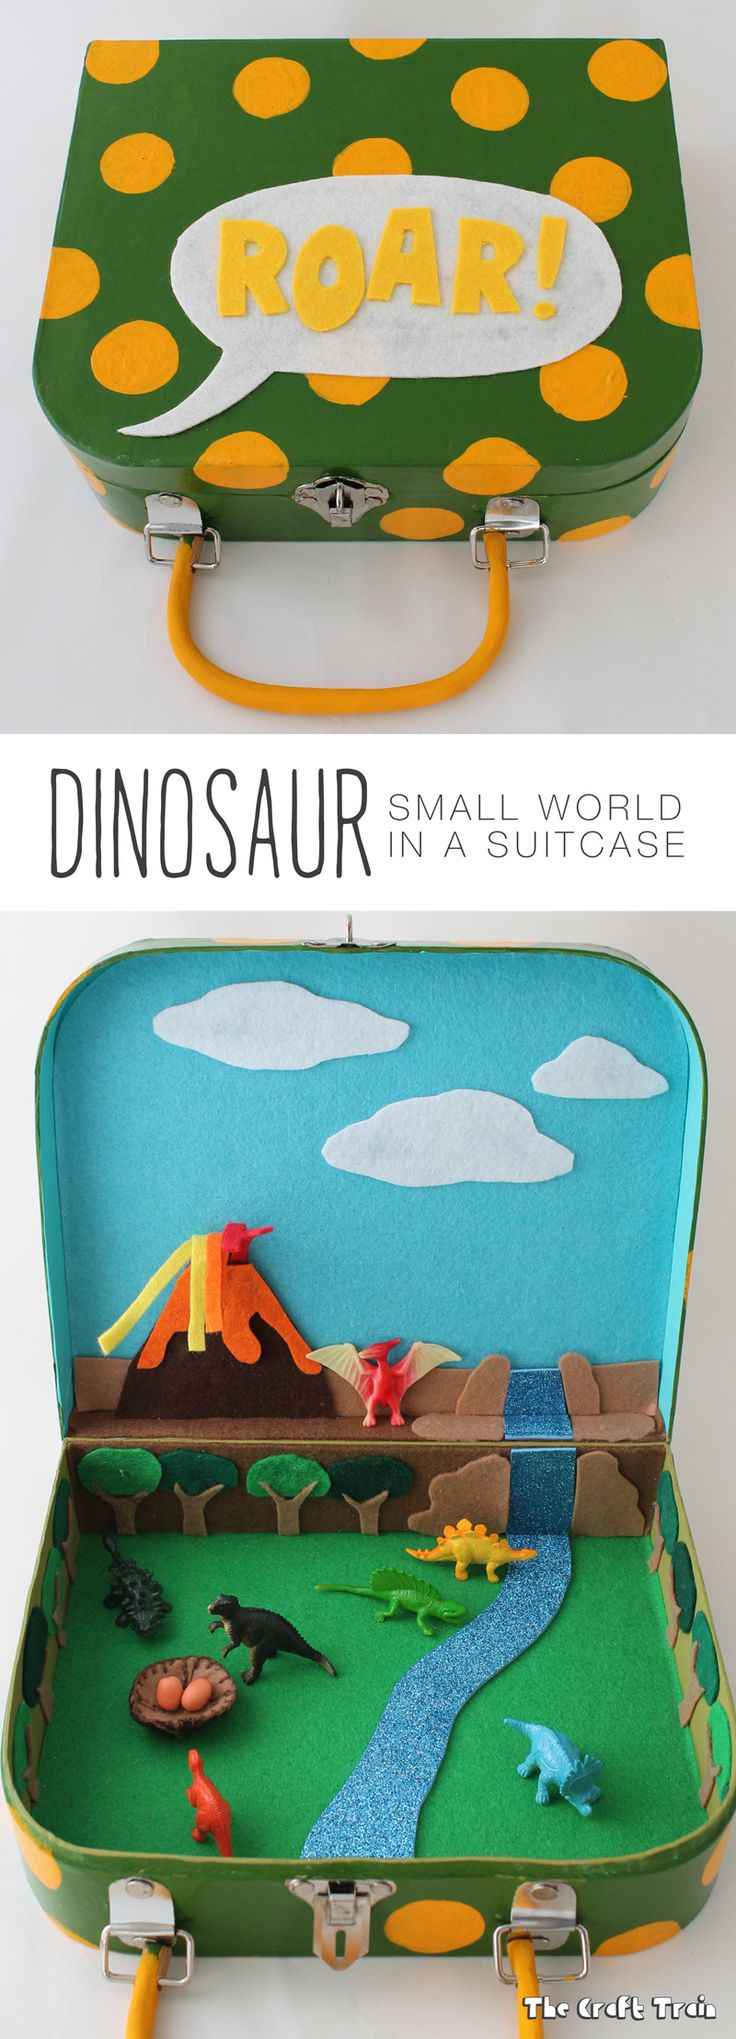 Dinosaur small world in a suitcase